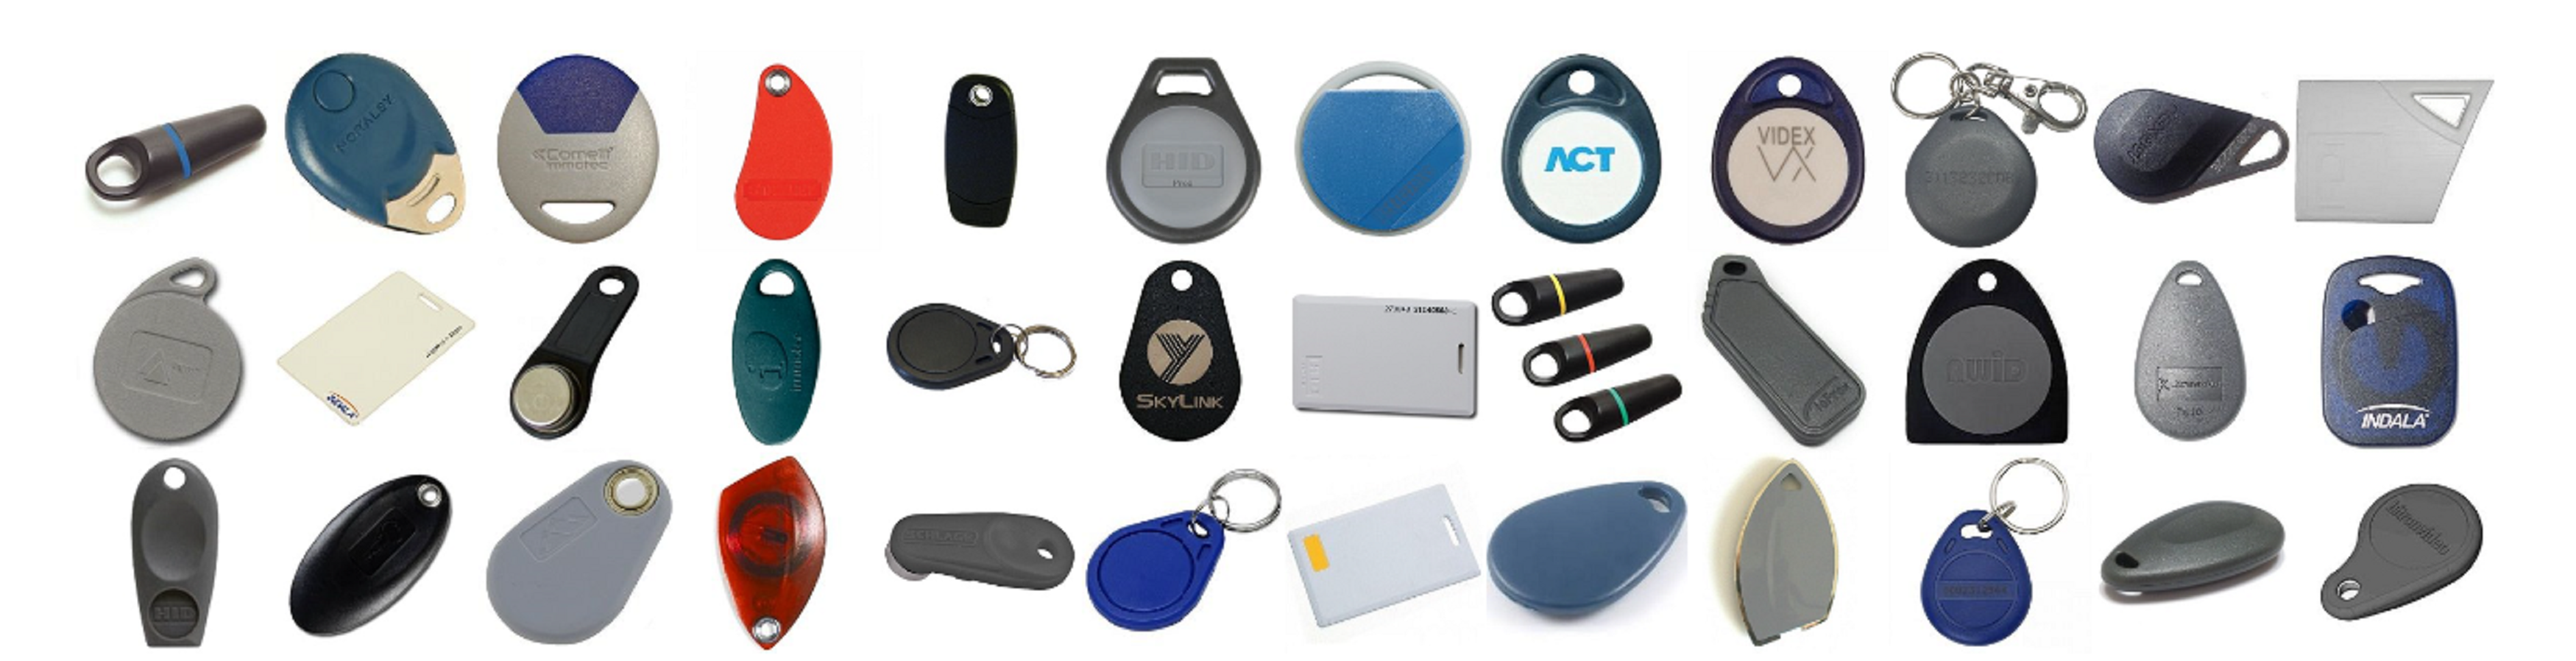 East London Key Fob Copying Programming Service | AFS Security